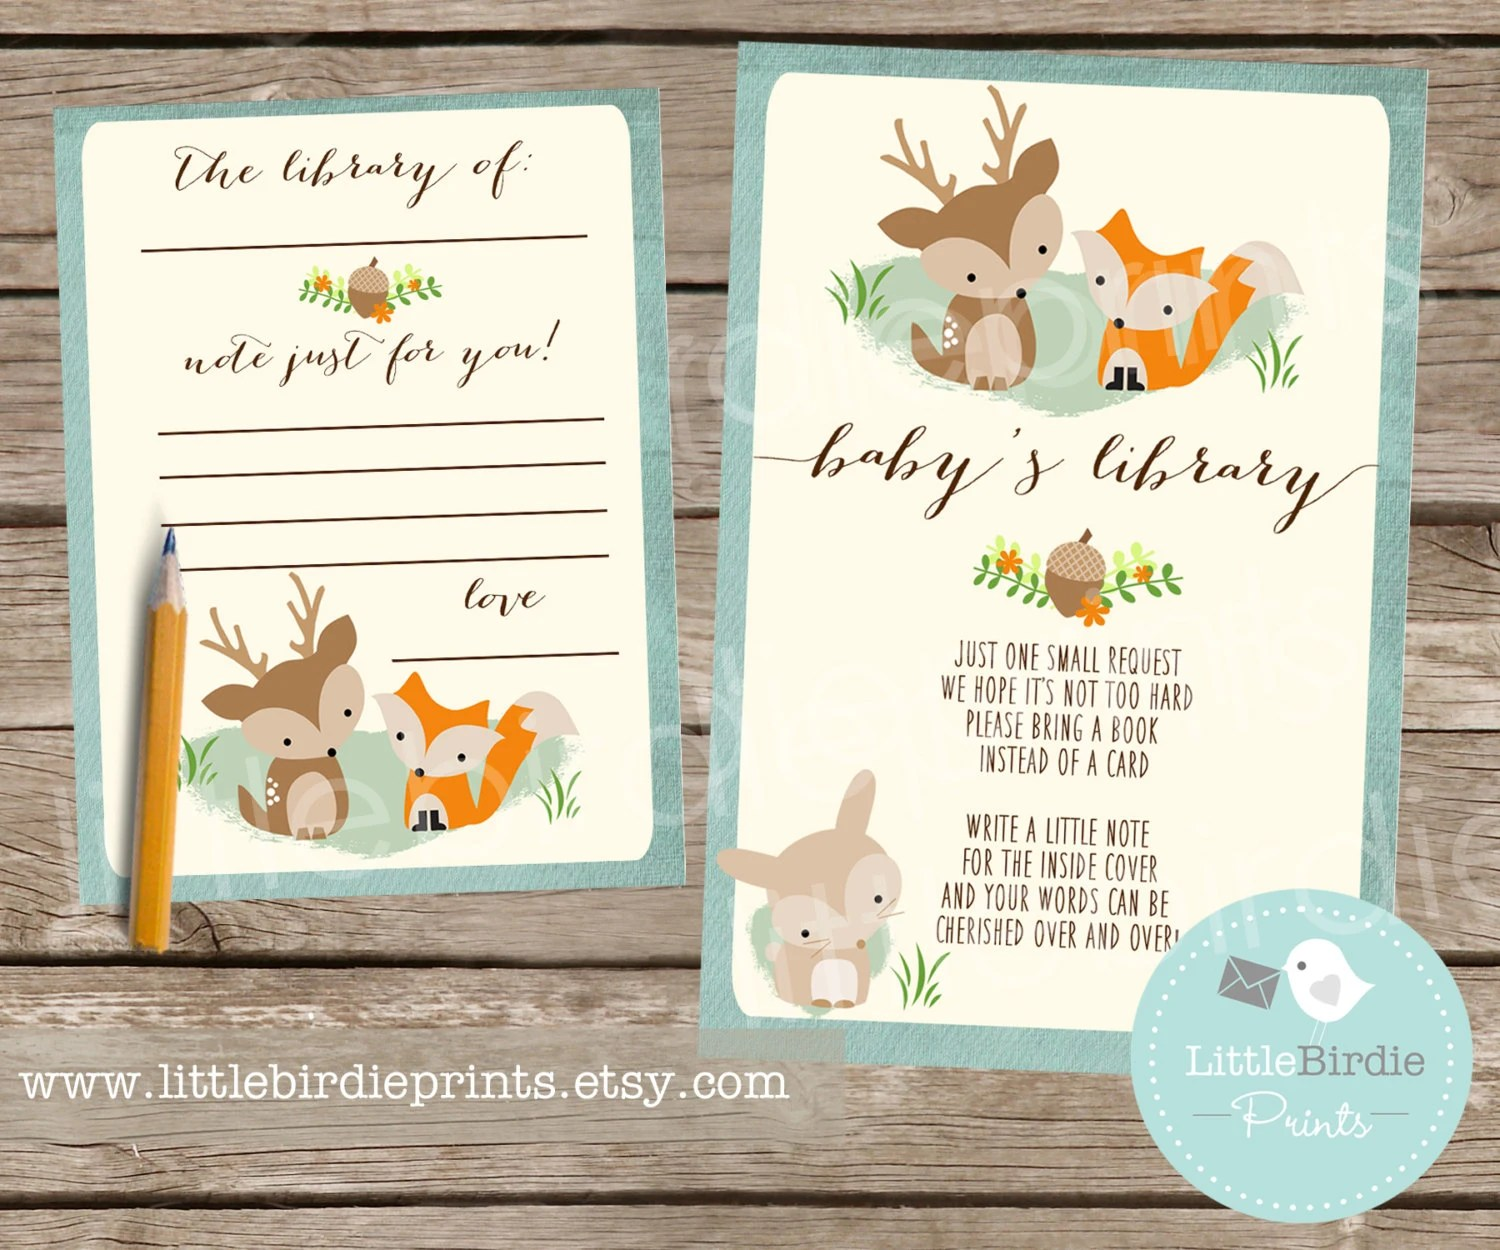 Woodland Baby Shower Book Instead Of A Card Inserts With